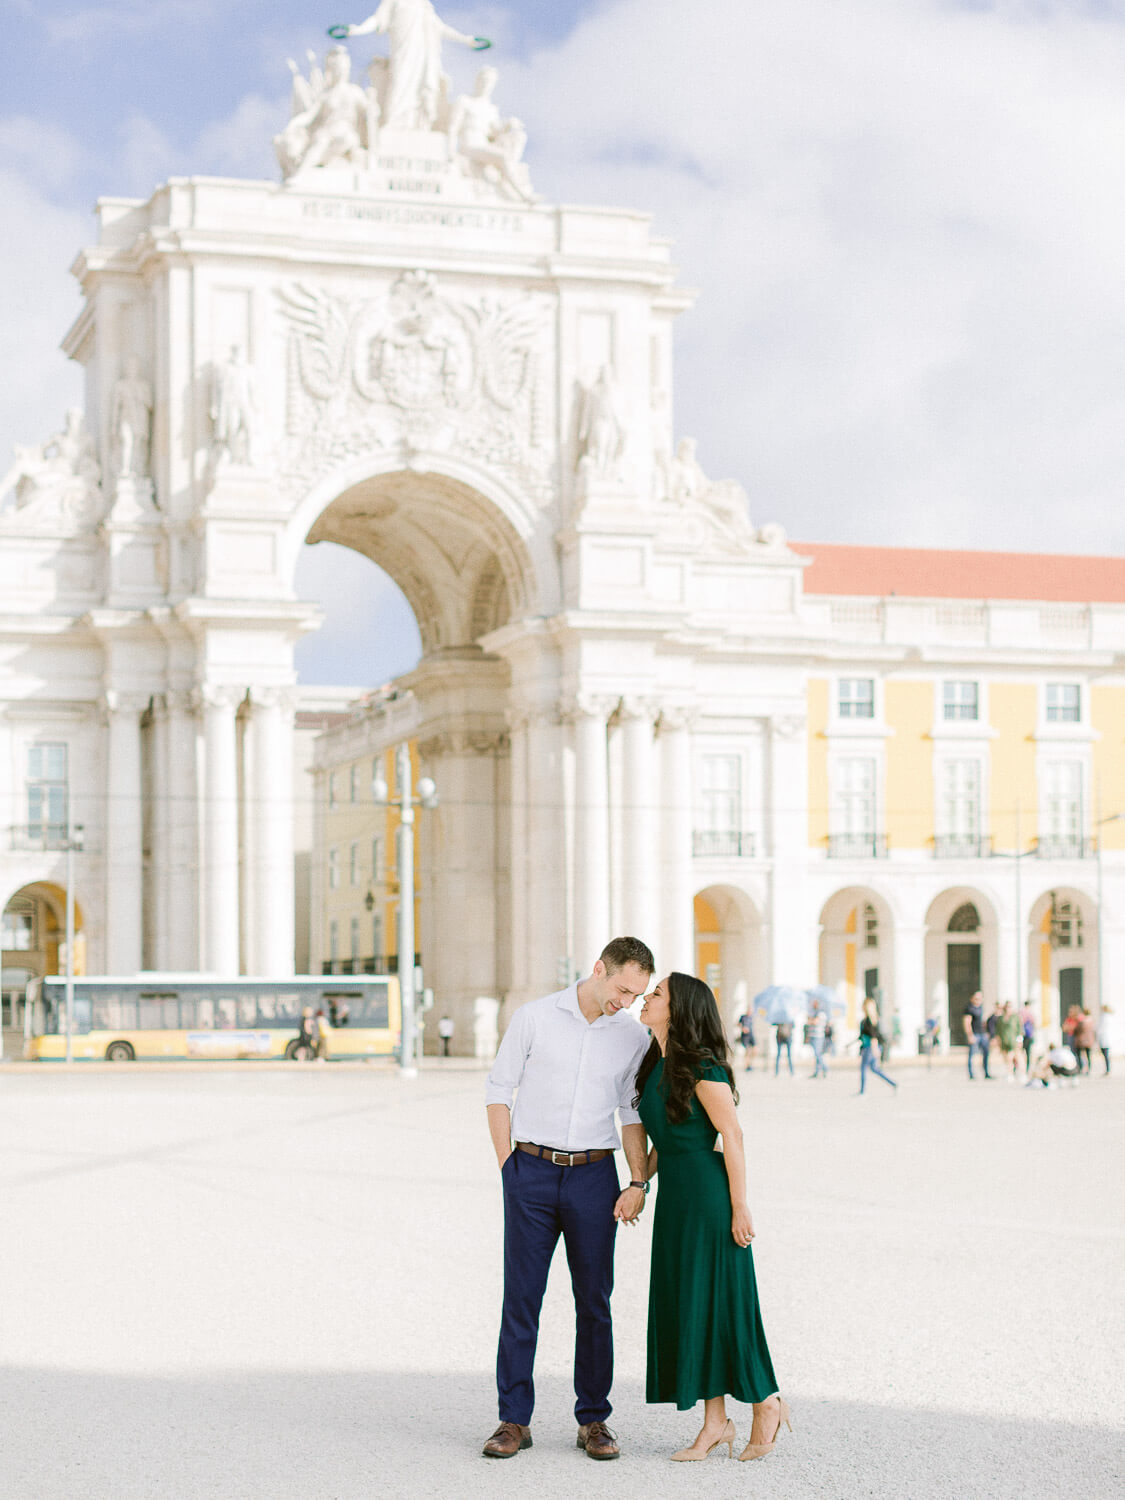 Romantic couple in front of Arco da Rua Augusta, Lisbon landmark triumphal arch by Portugal Wedding Photographer